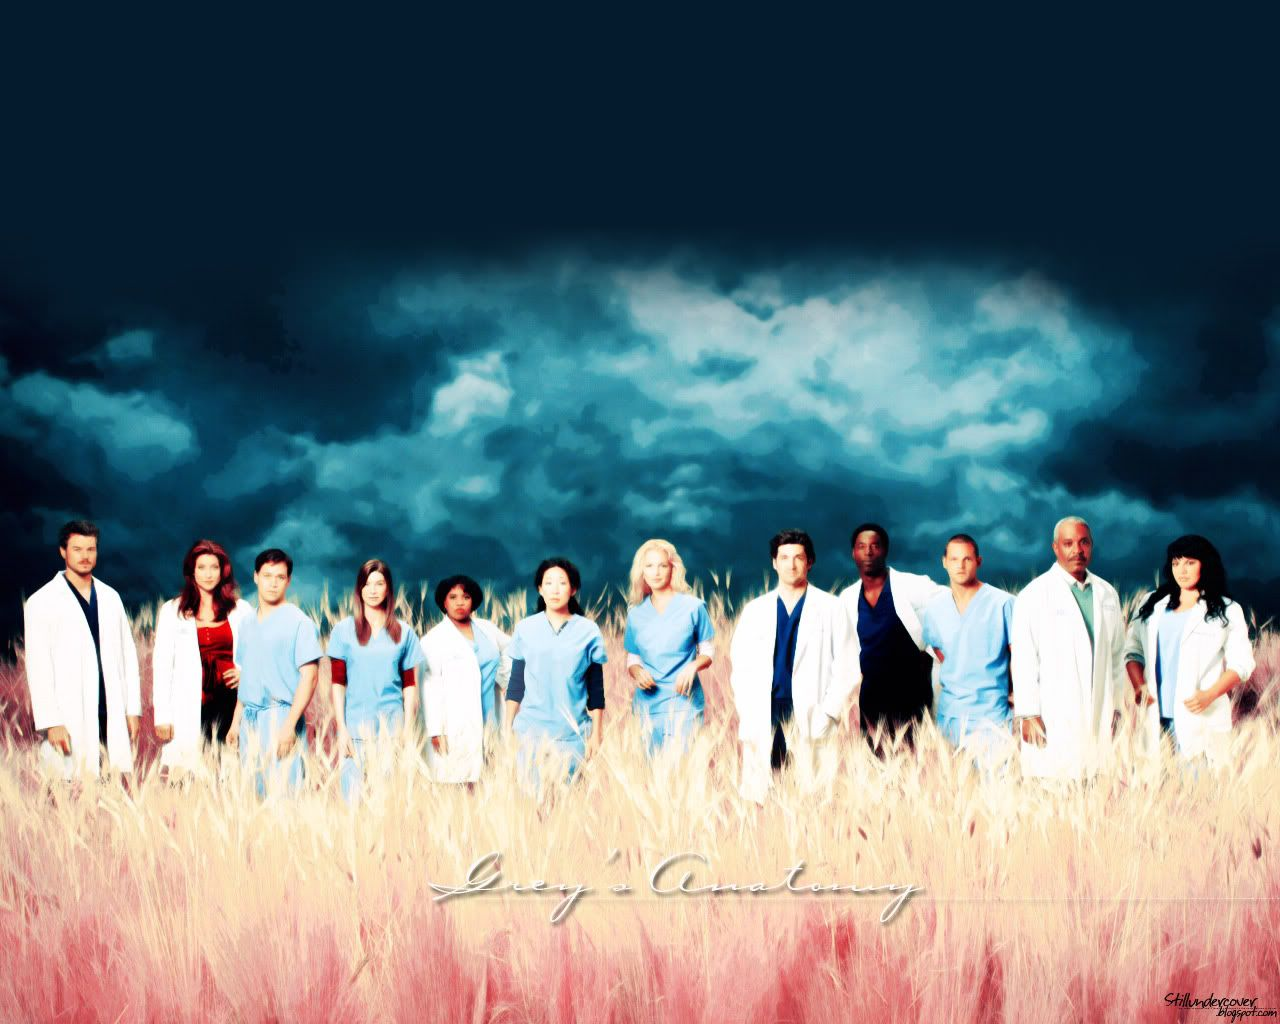 Greys Anatomy Promo Picture Wallpaper TV Fanart Wallpapers Icons 1280x1024